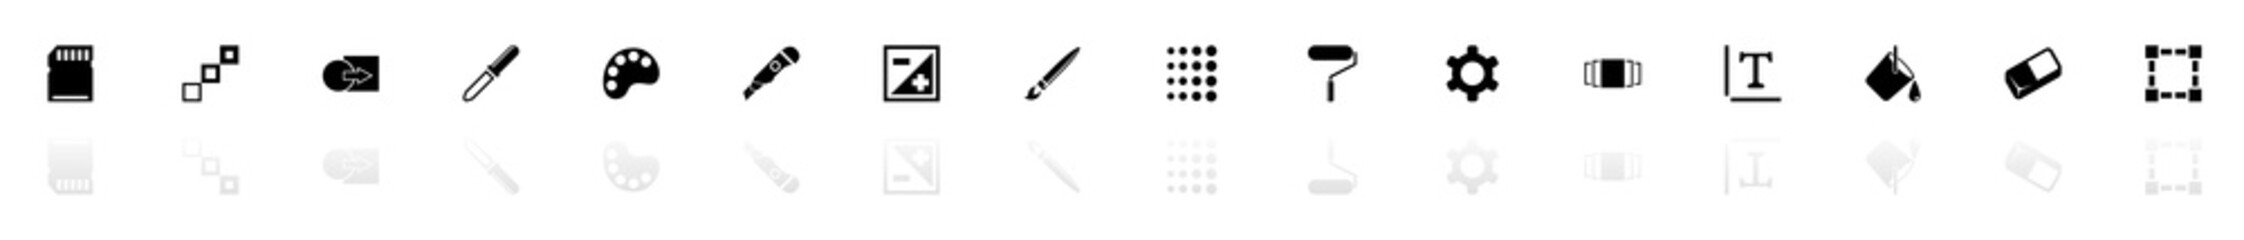 Image icons - Black horizontal Illustration symbol on White Background with a mirror Shadow reflection. Flat Vector Icon.